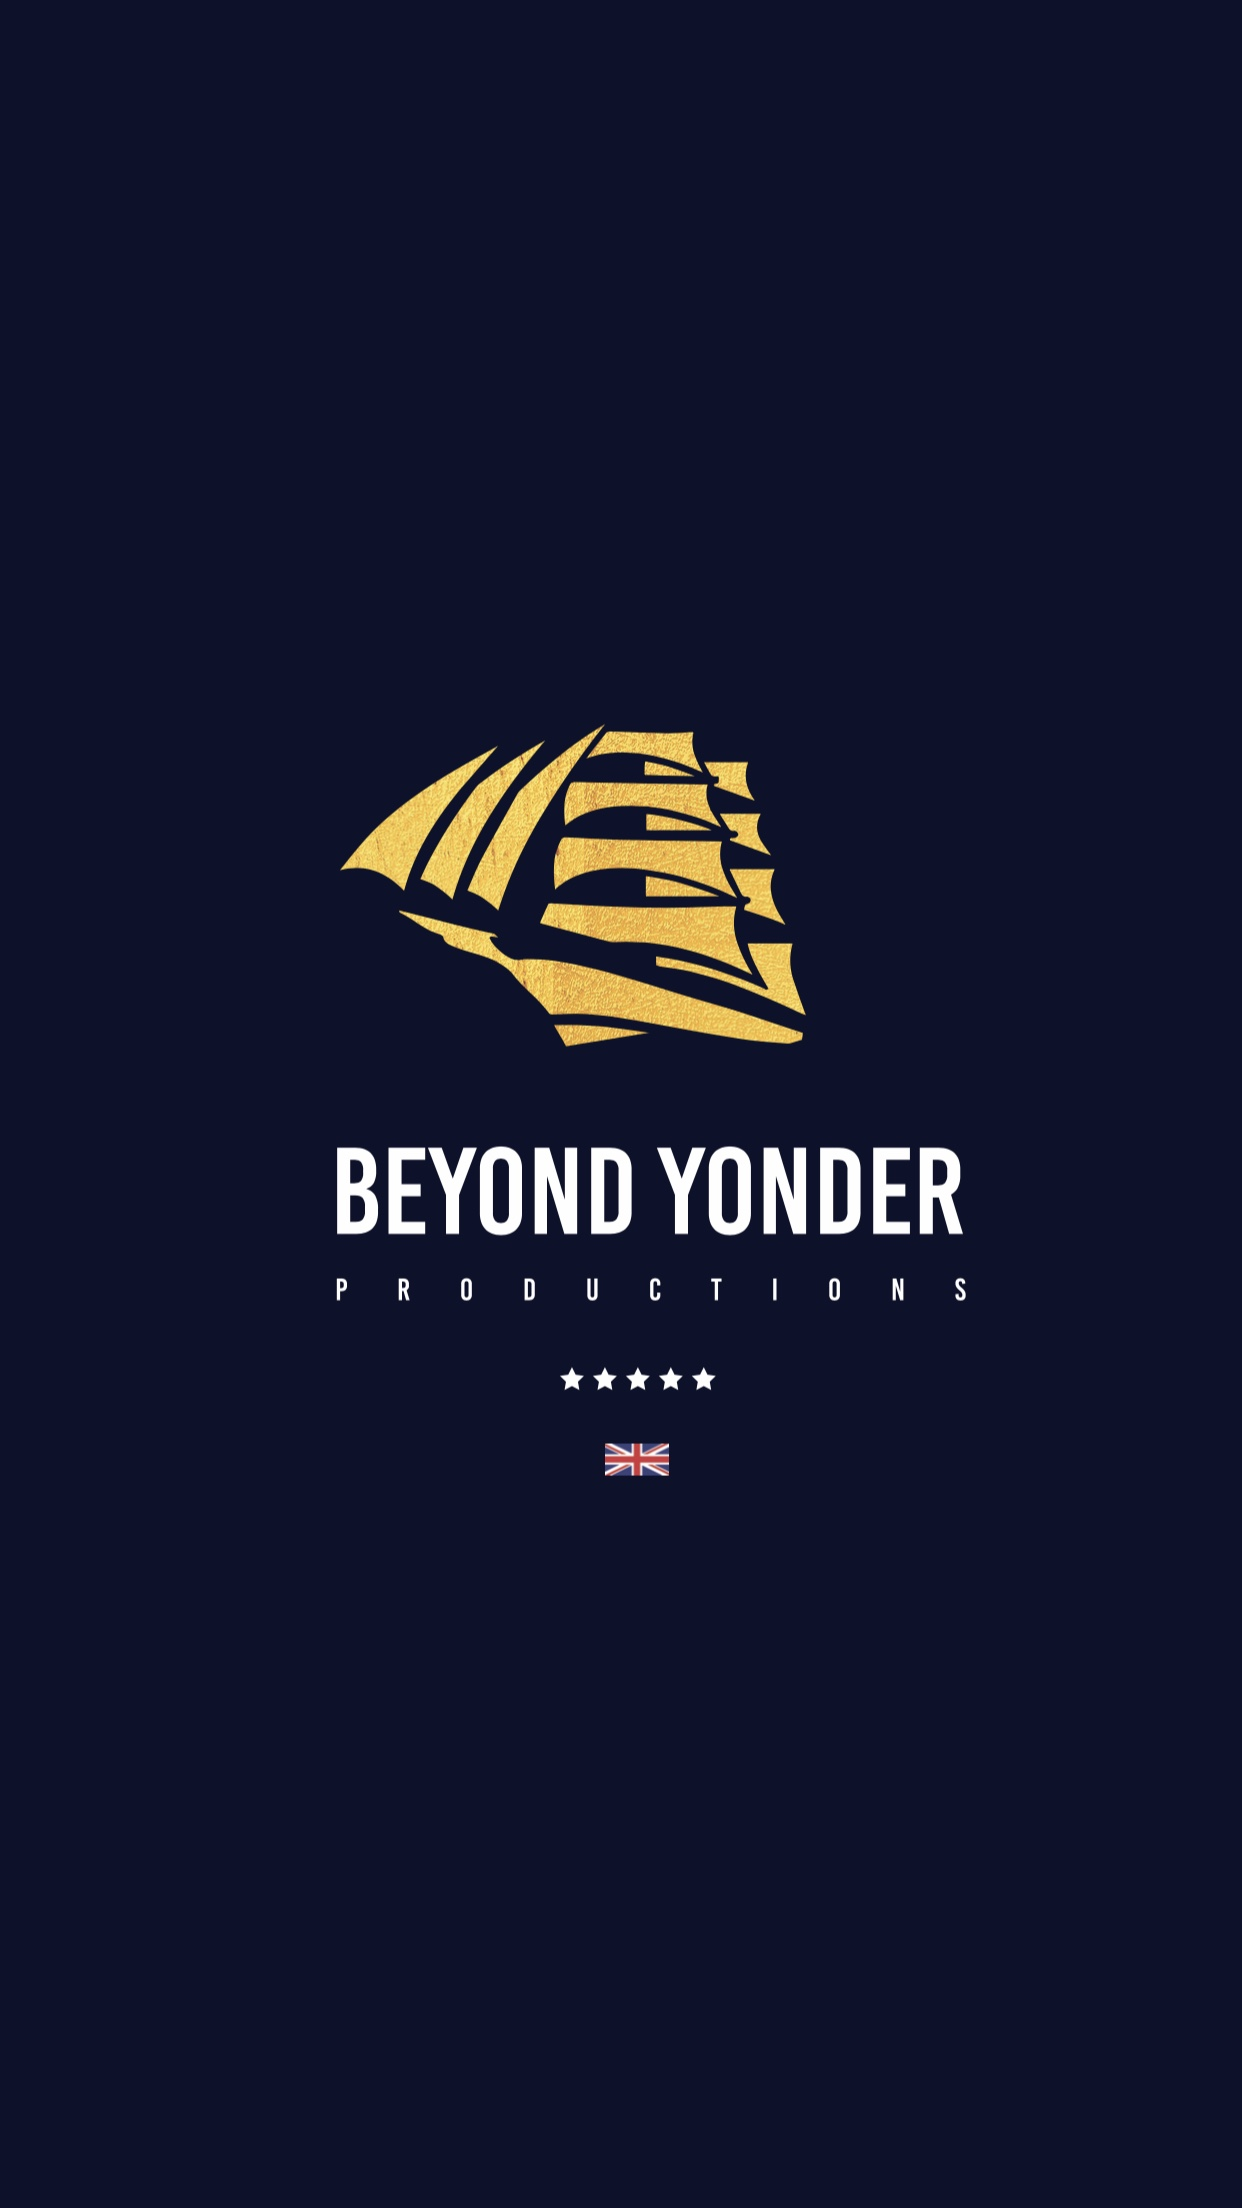 Beyond Yonder Productions